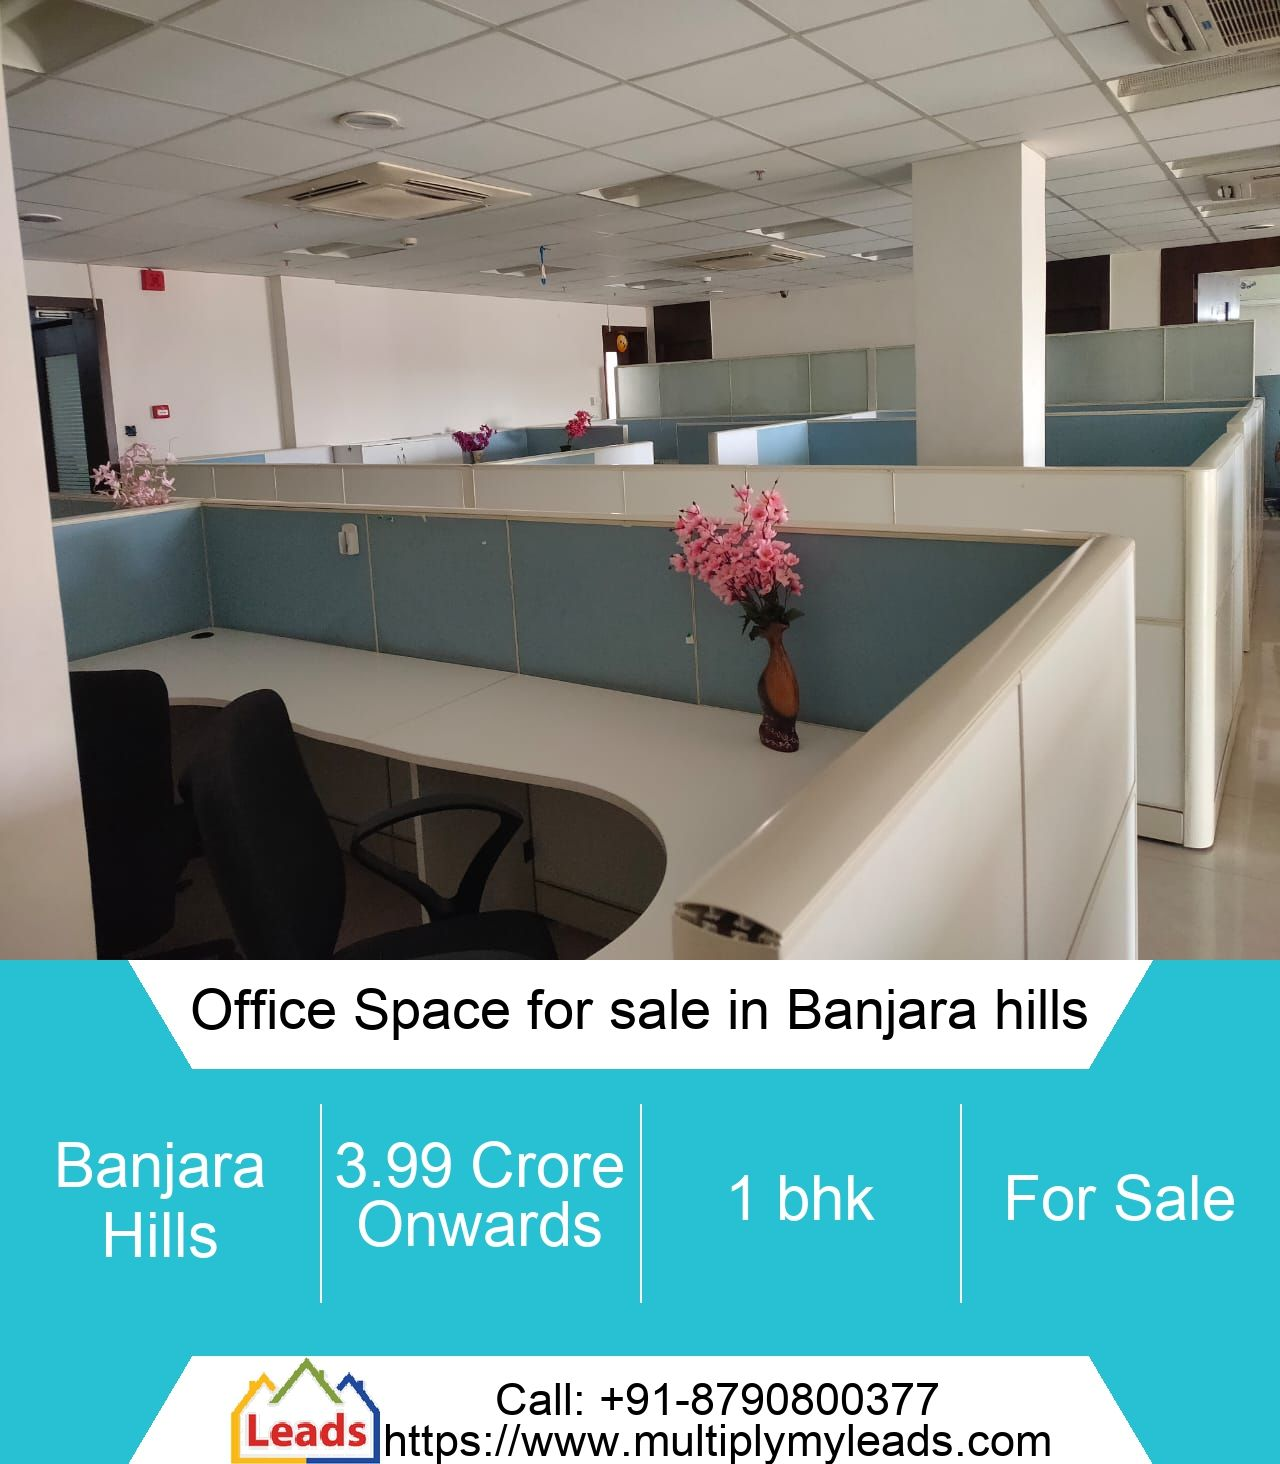 Office For Sale 4 06 Cr In Office Space For Sale In Banjara Hills Banjara Hills 4000 0 Sq Feet Built Up Area Of This Prop Flooring Types Of Flooring Property